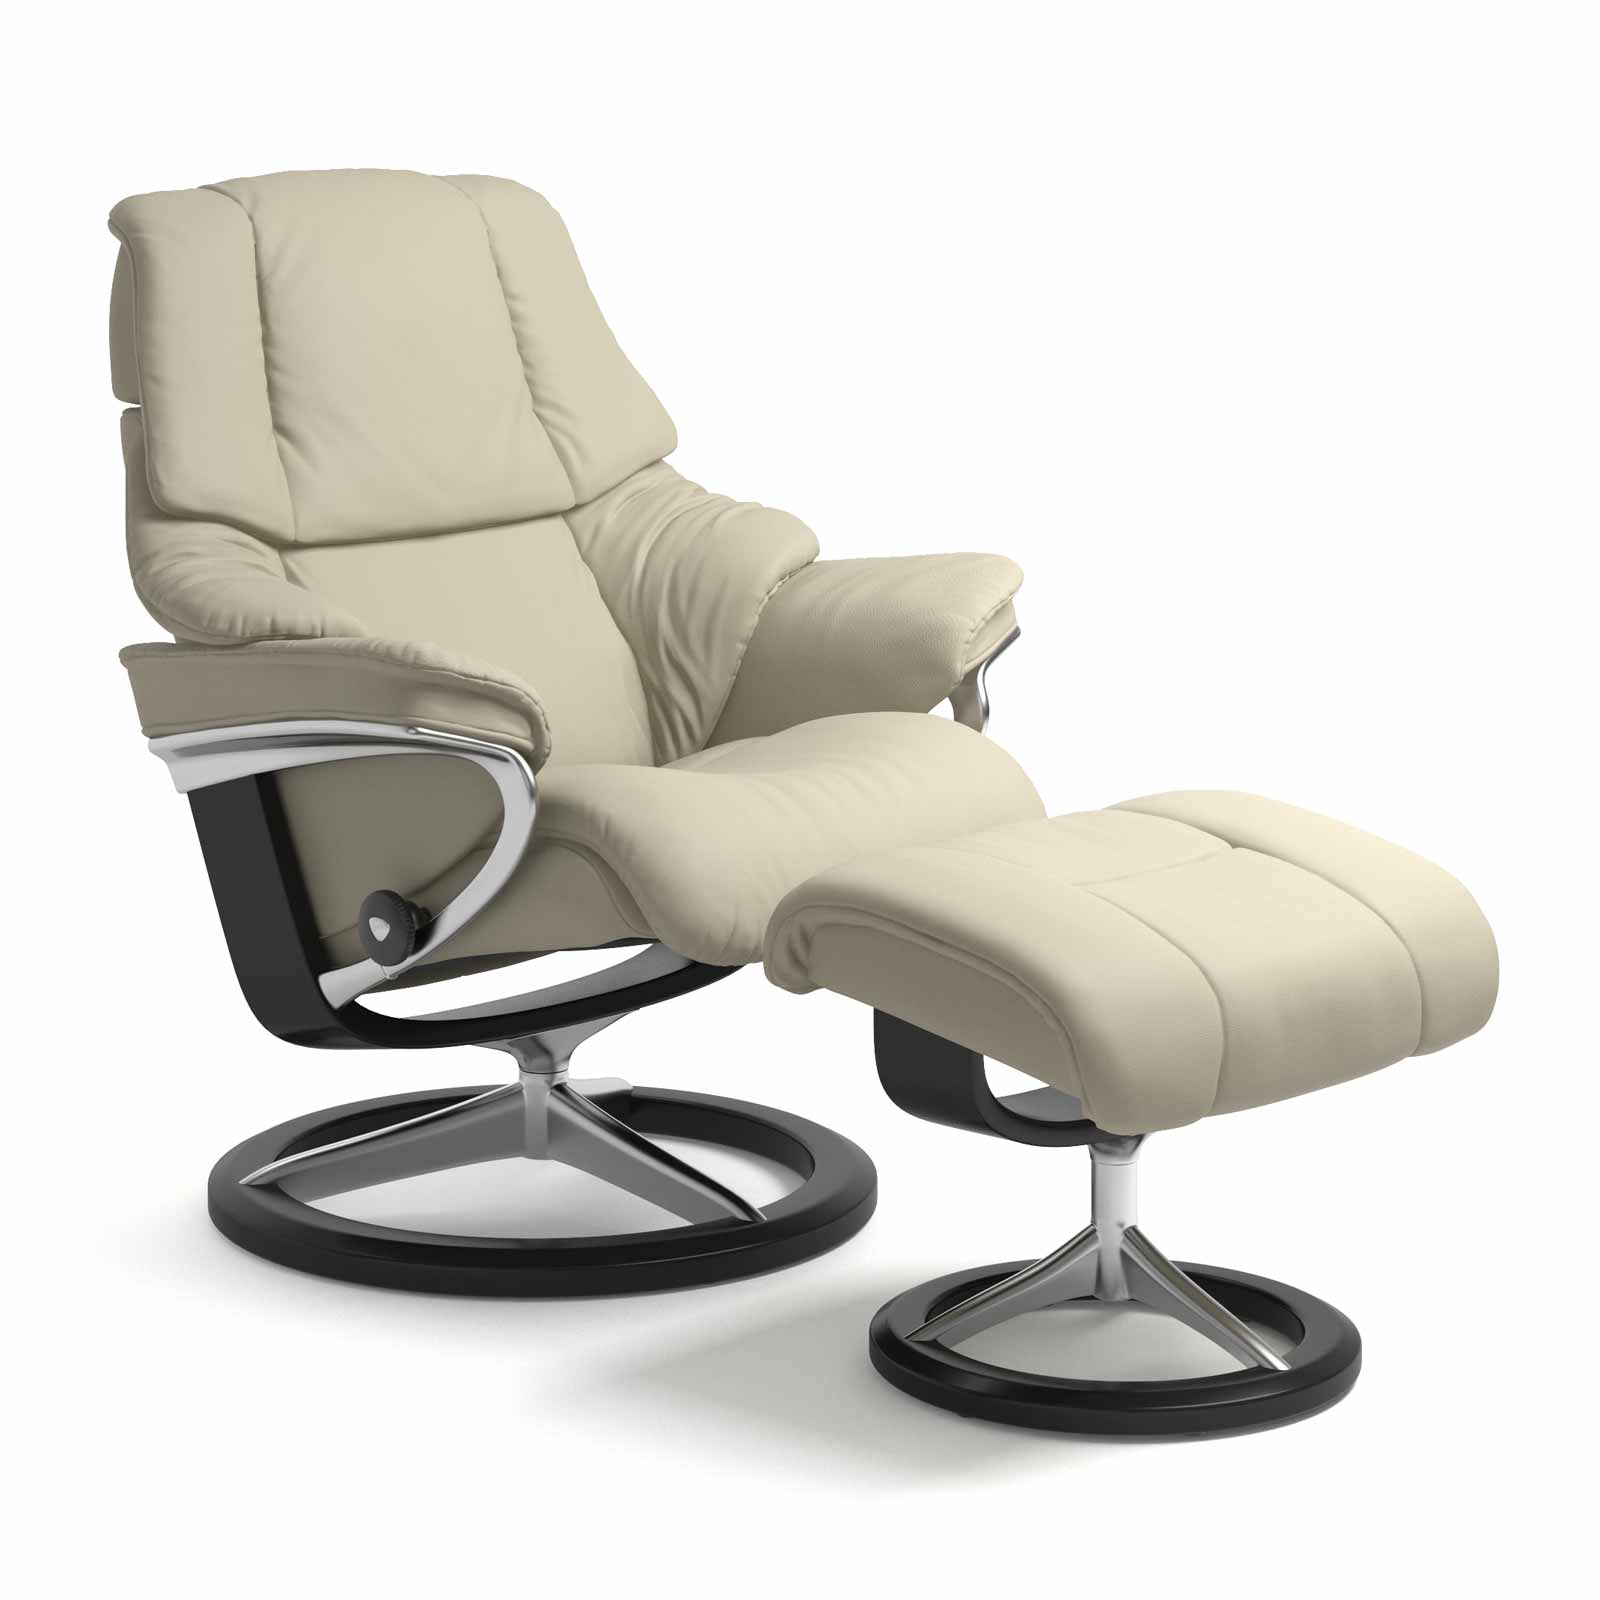 Stressless Sessel Mit Hocker Stressless Sessel Reno Signature Paloma Light Grey Mit Hocker